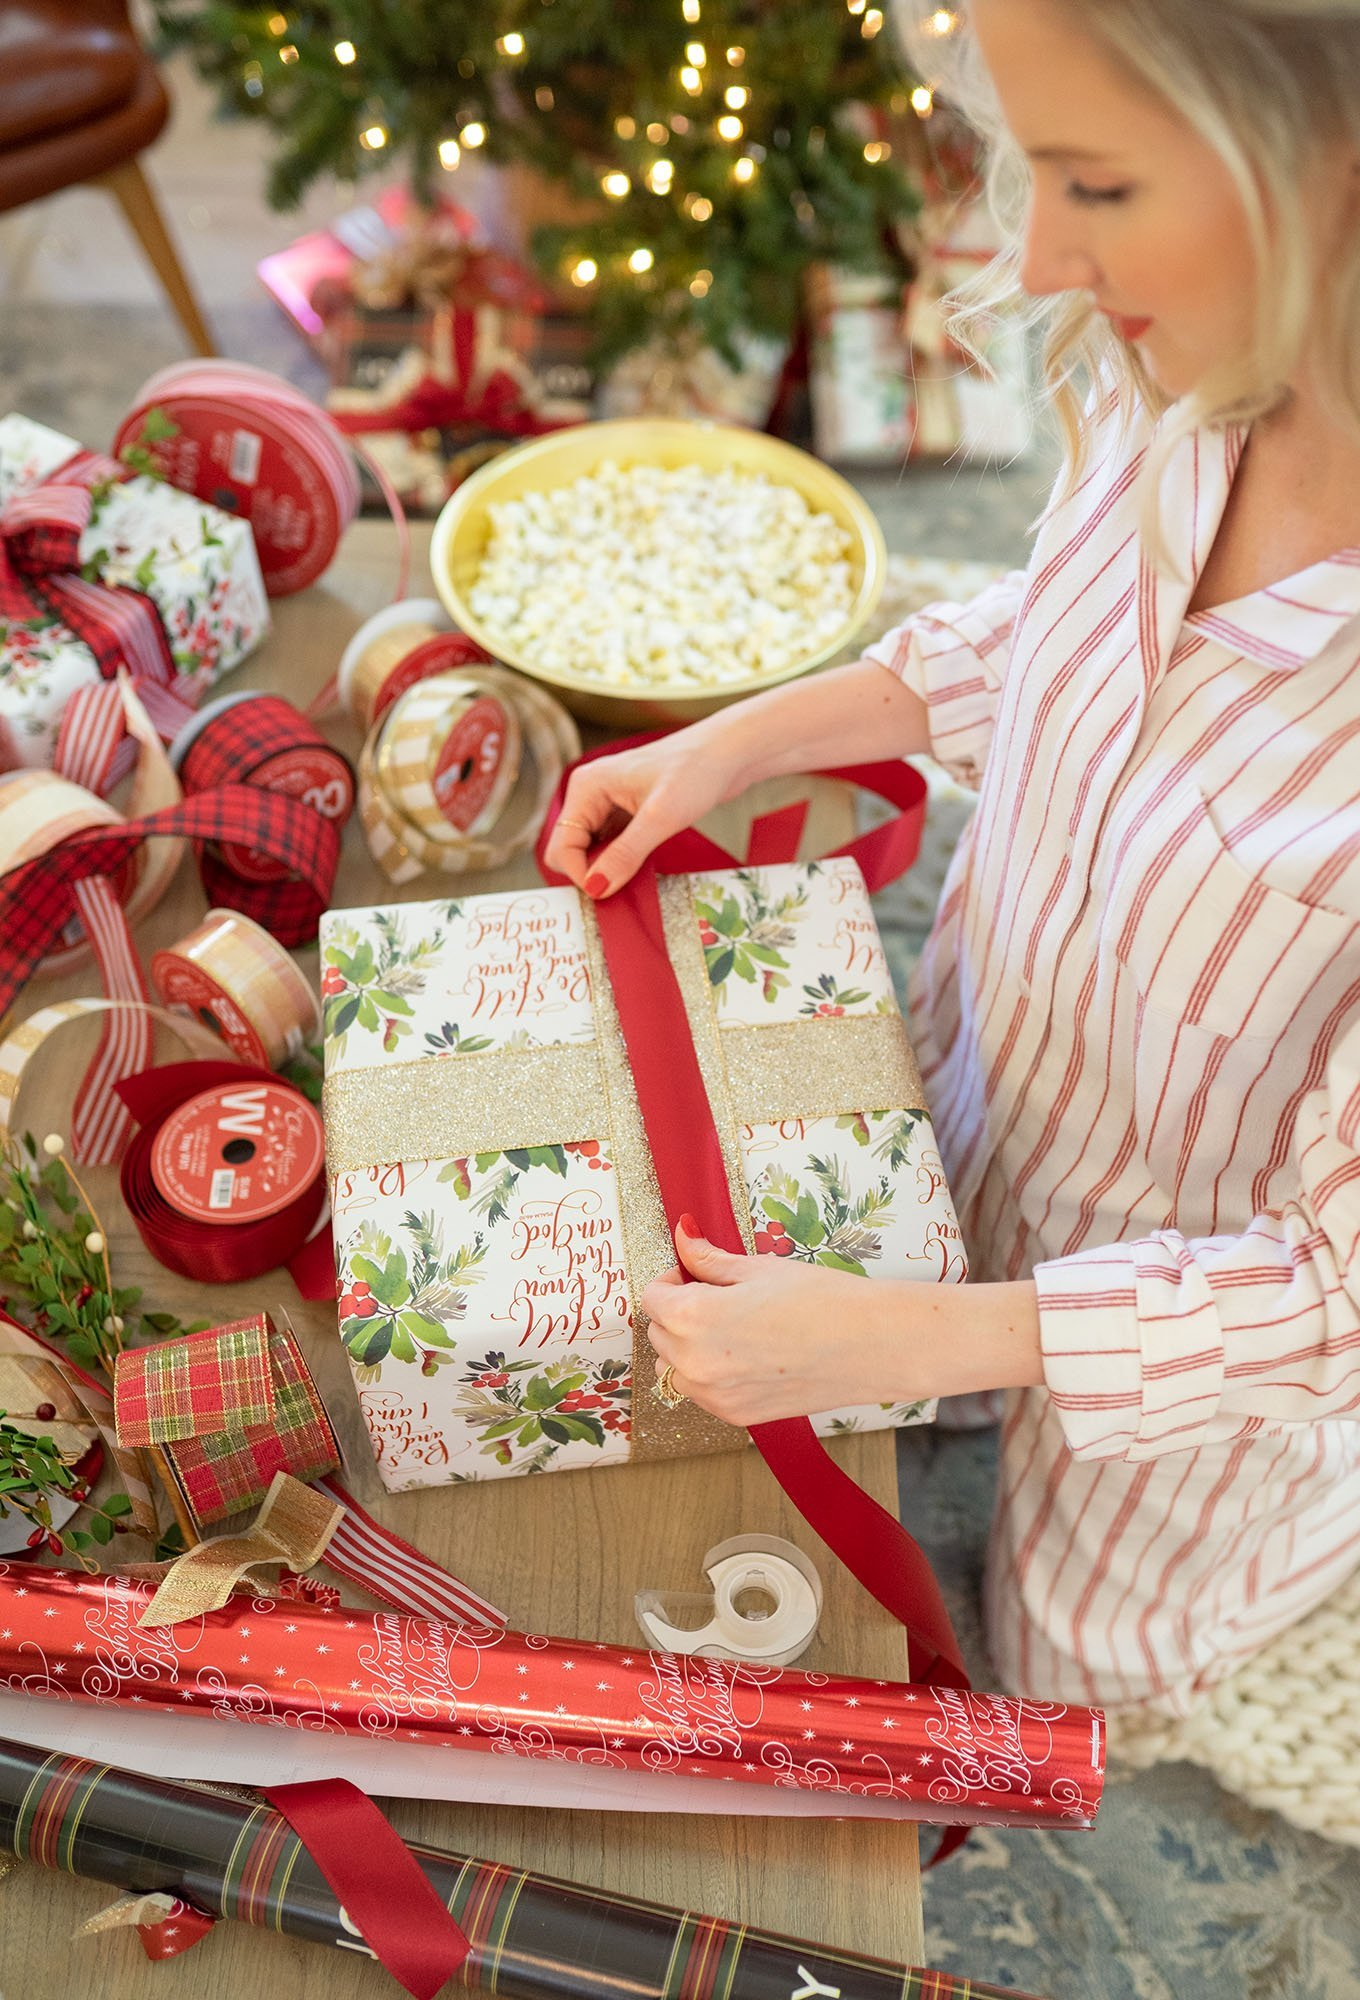 Gift wrapping tips from Ashley Brooke